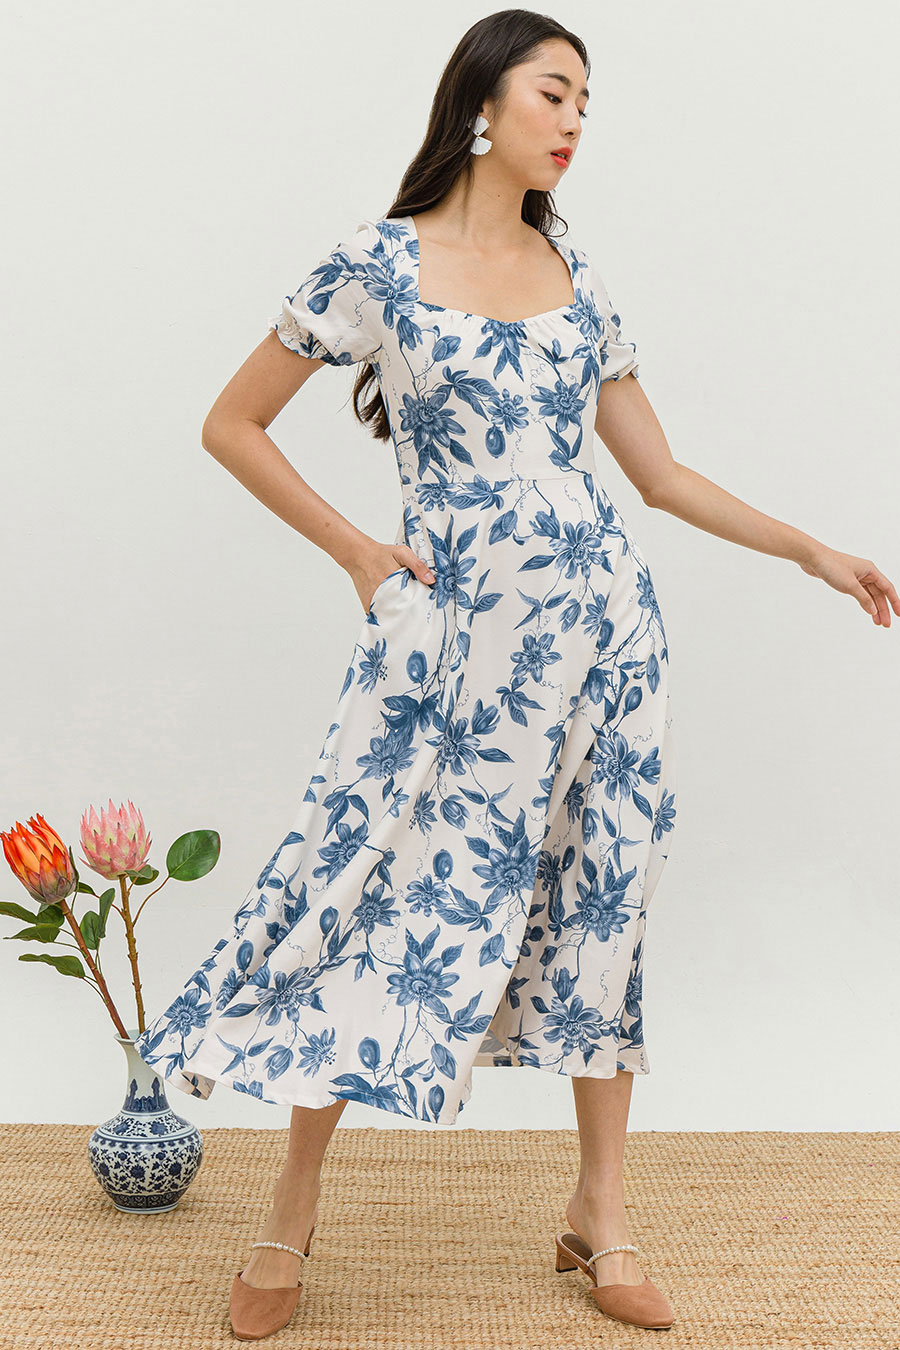 *RESTOCKED* GEOFFROY DRESS - MING FLEUR [BY MODPARADE]